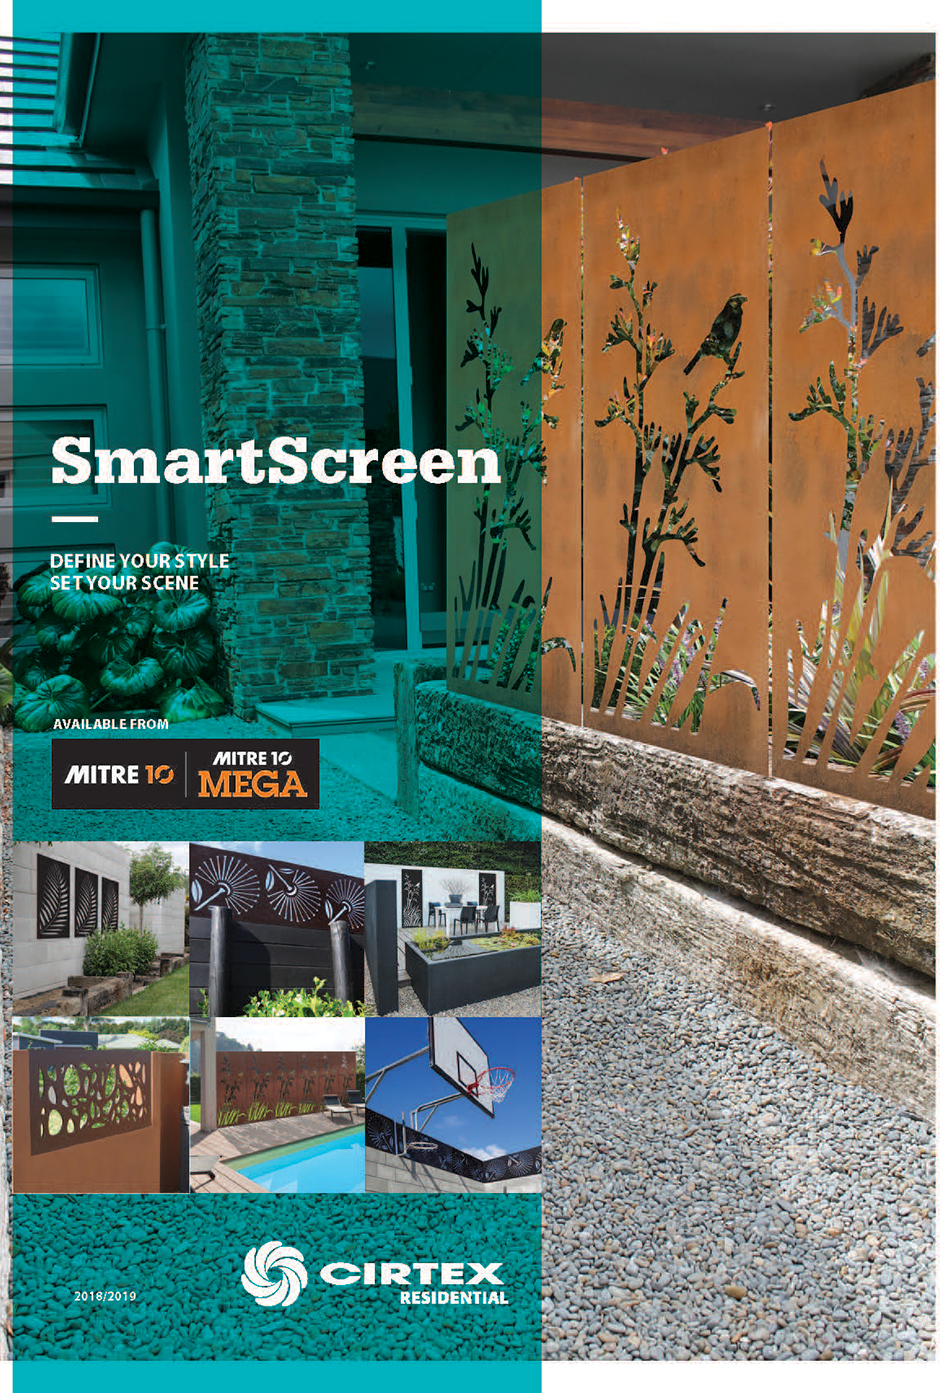 smartscreen-cover